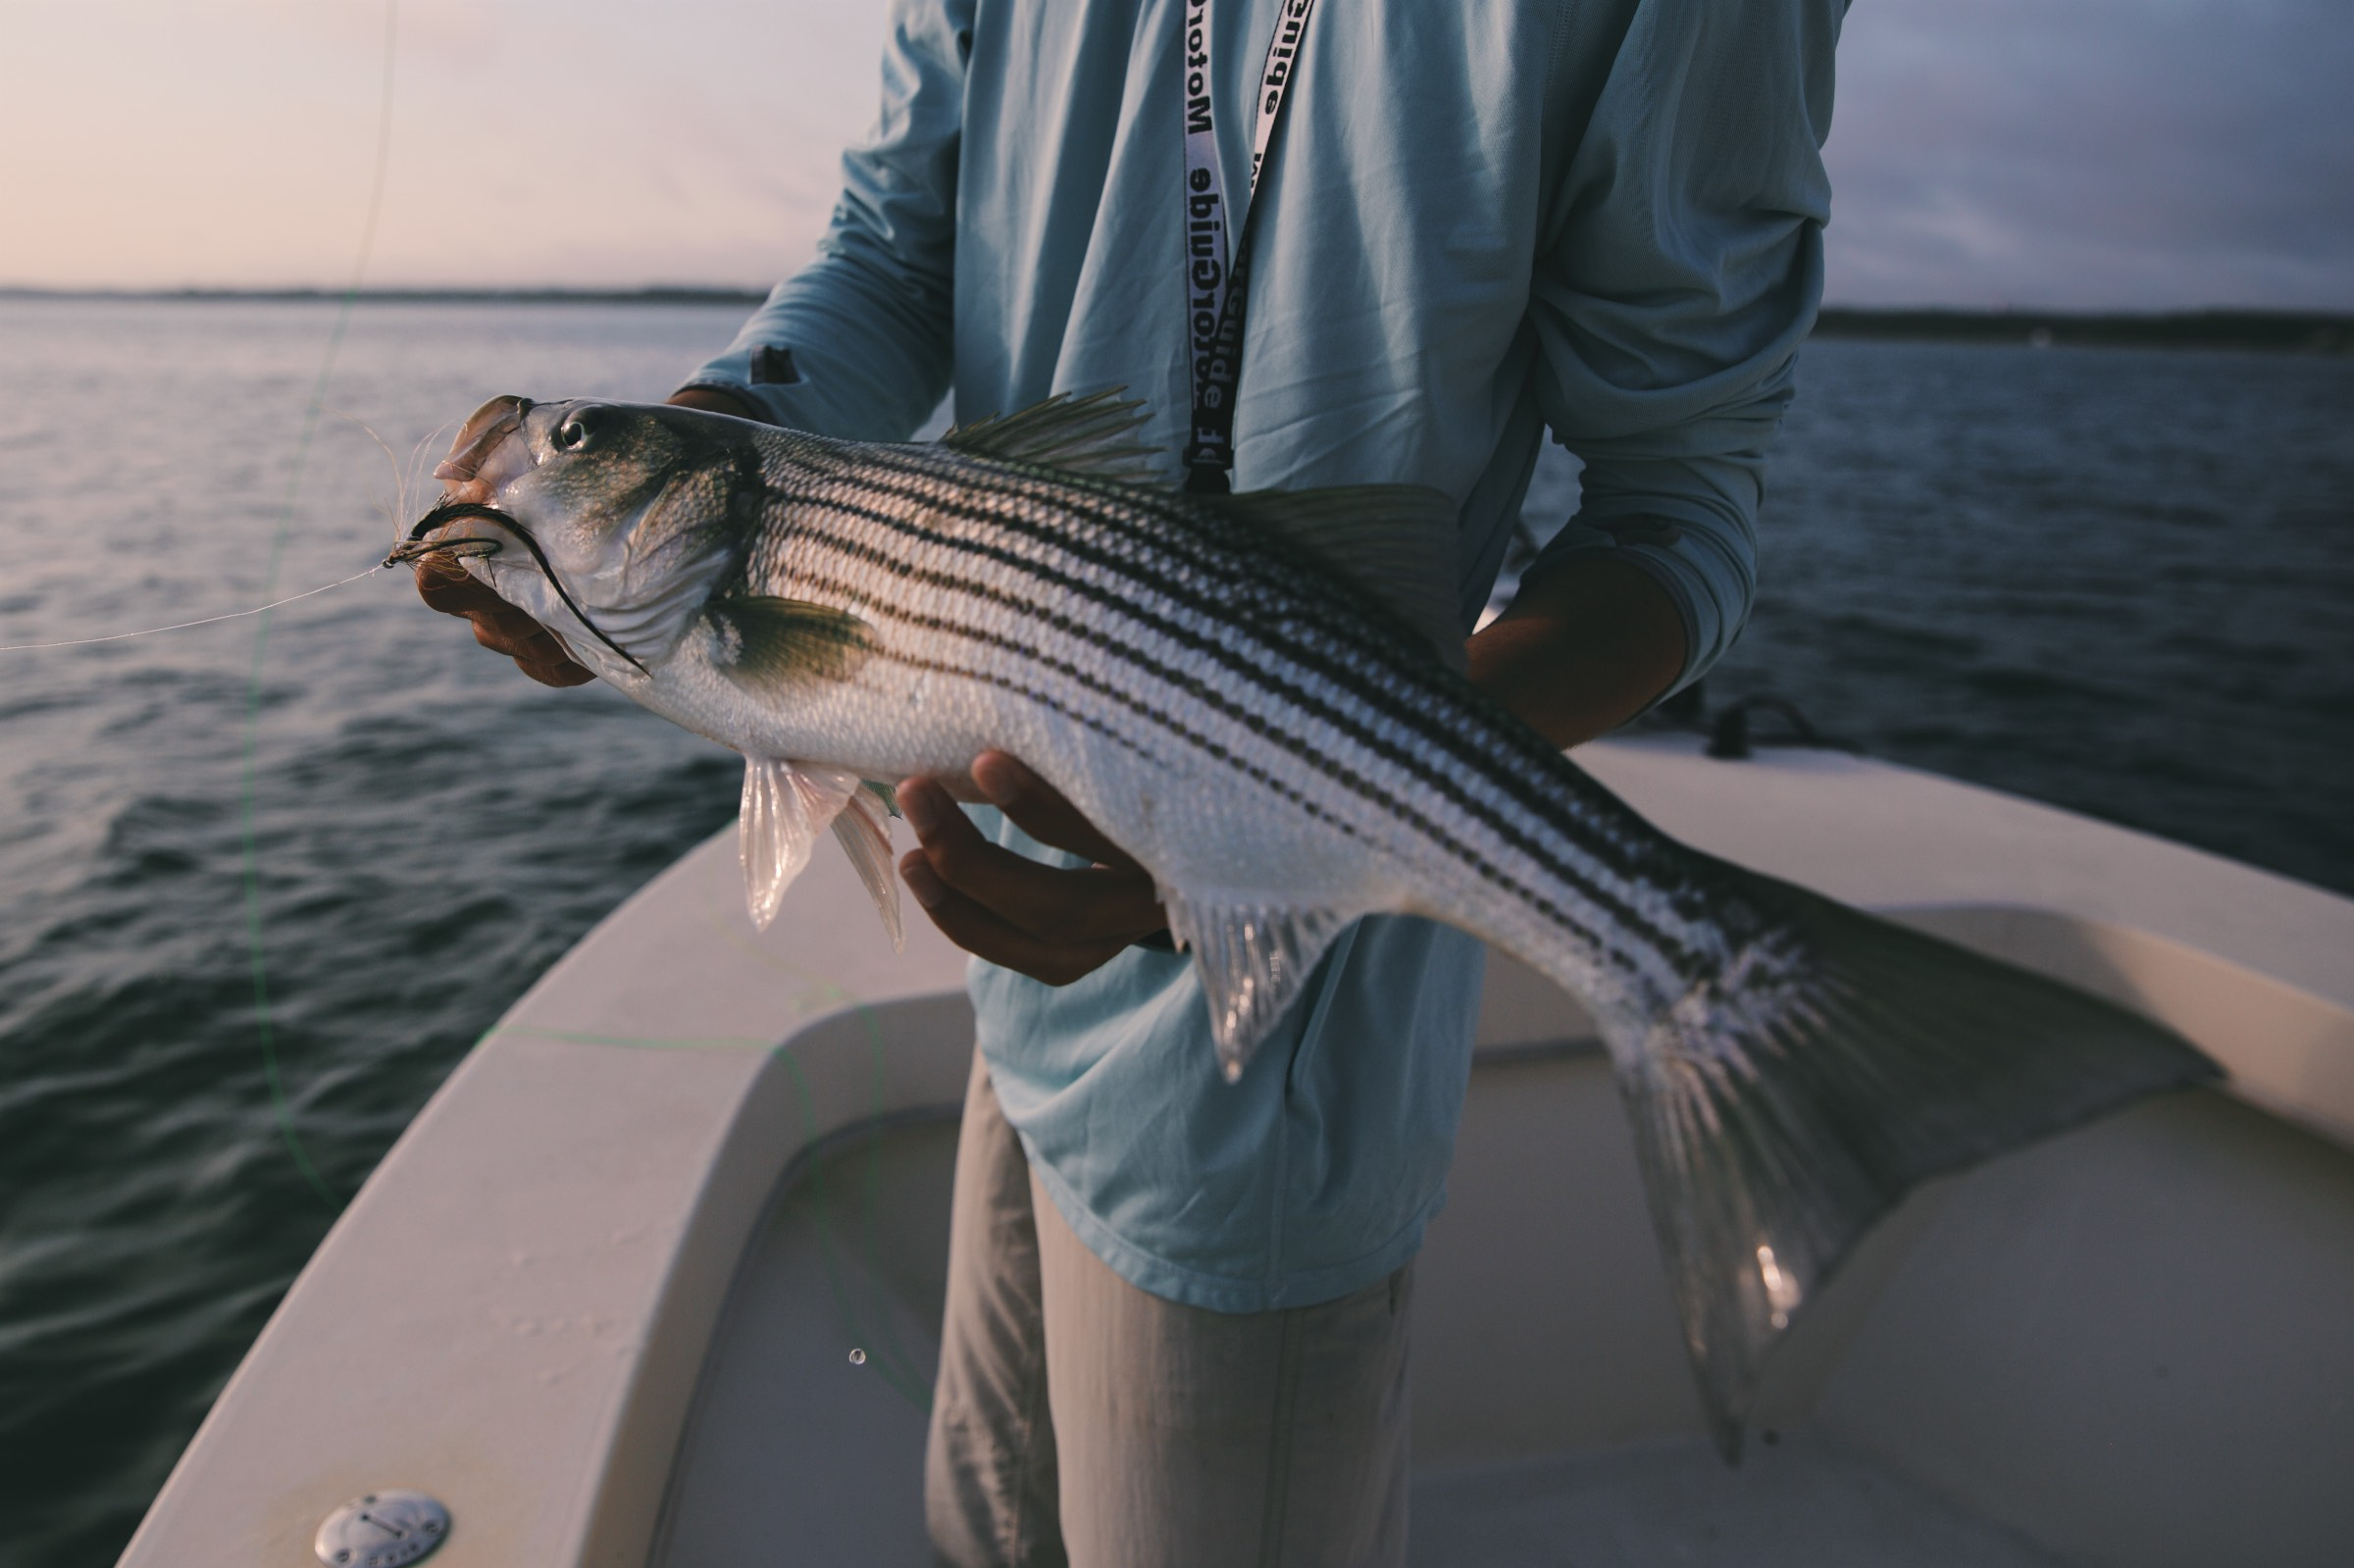 Essential Gear for Striper Fly Fishing from a Boat